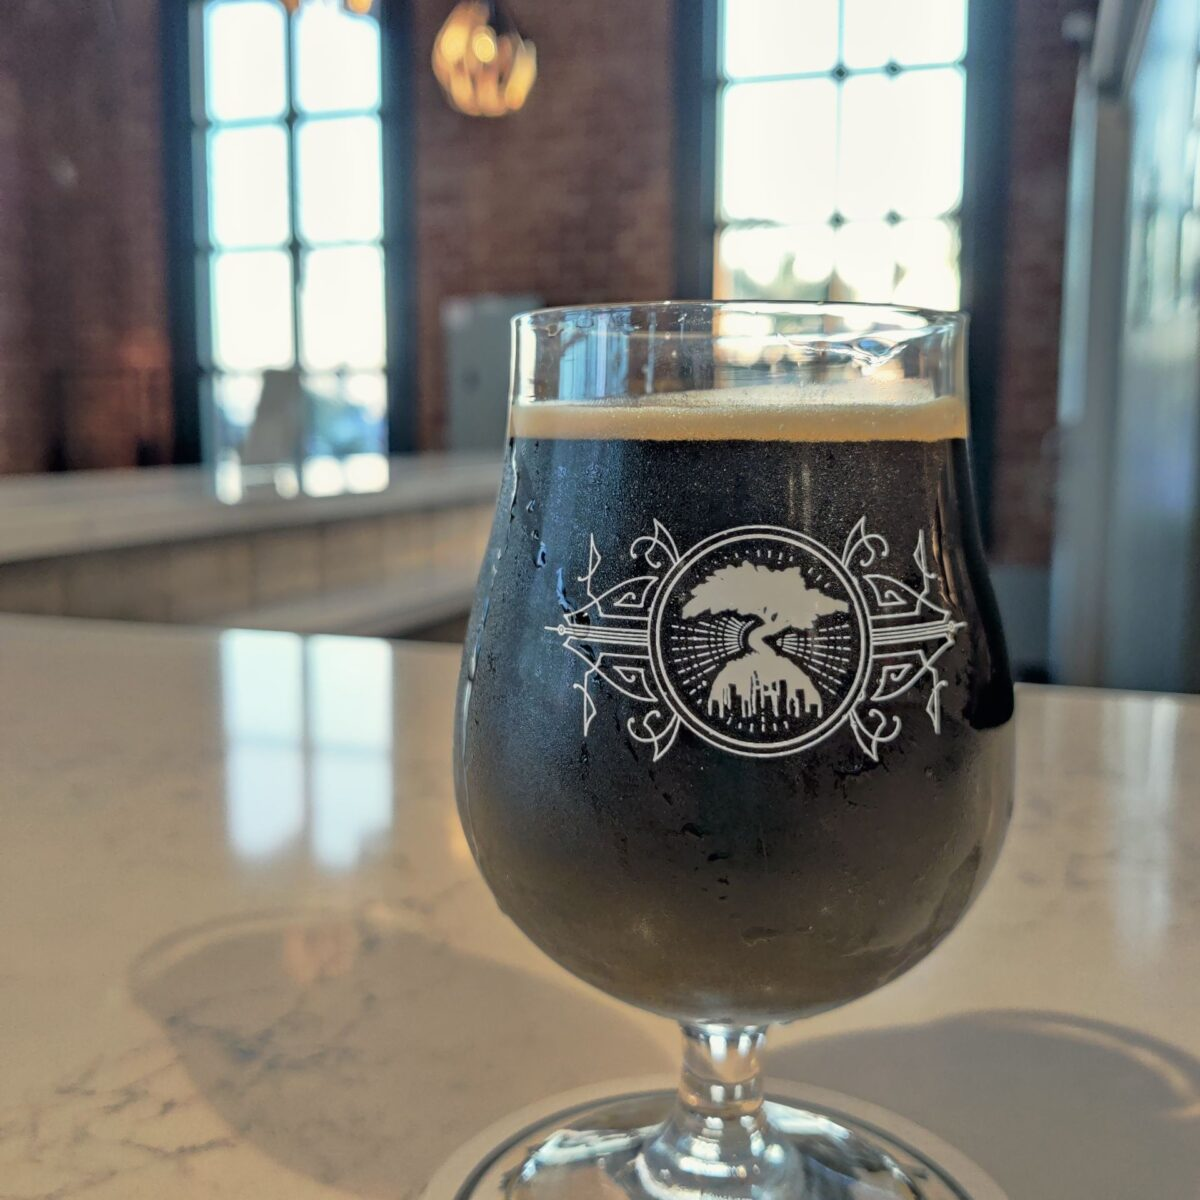 Is Ticking Clock (2020) by Smog City Brewing